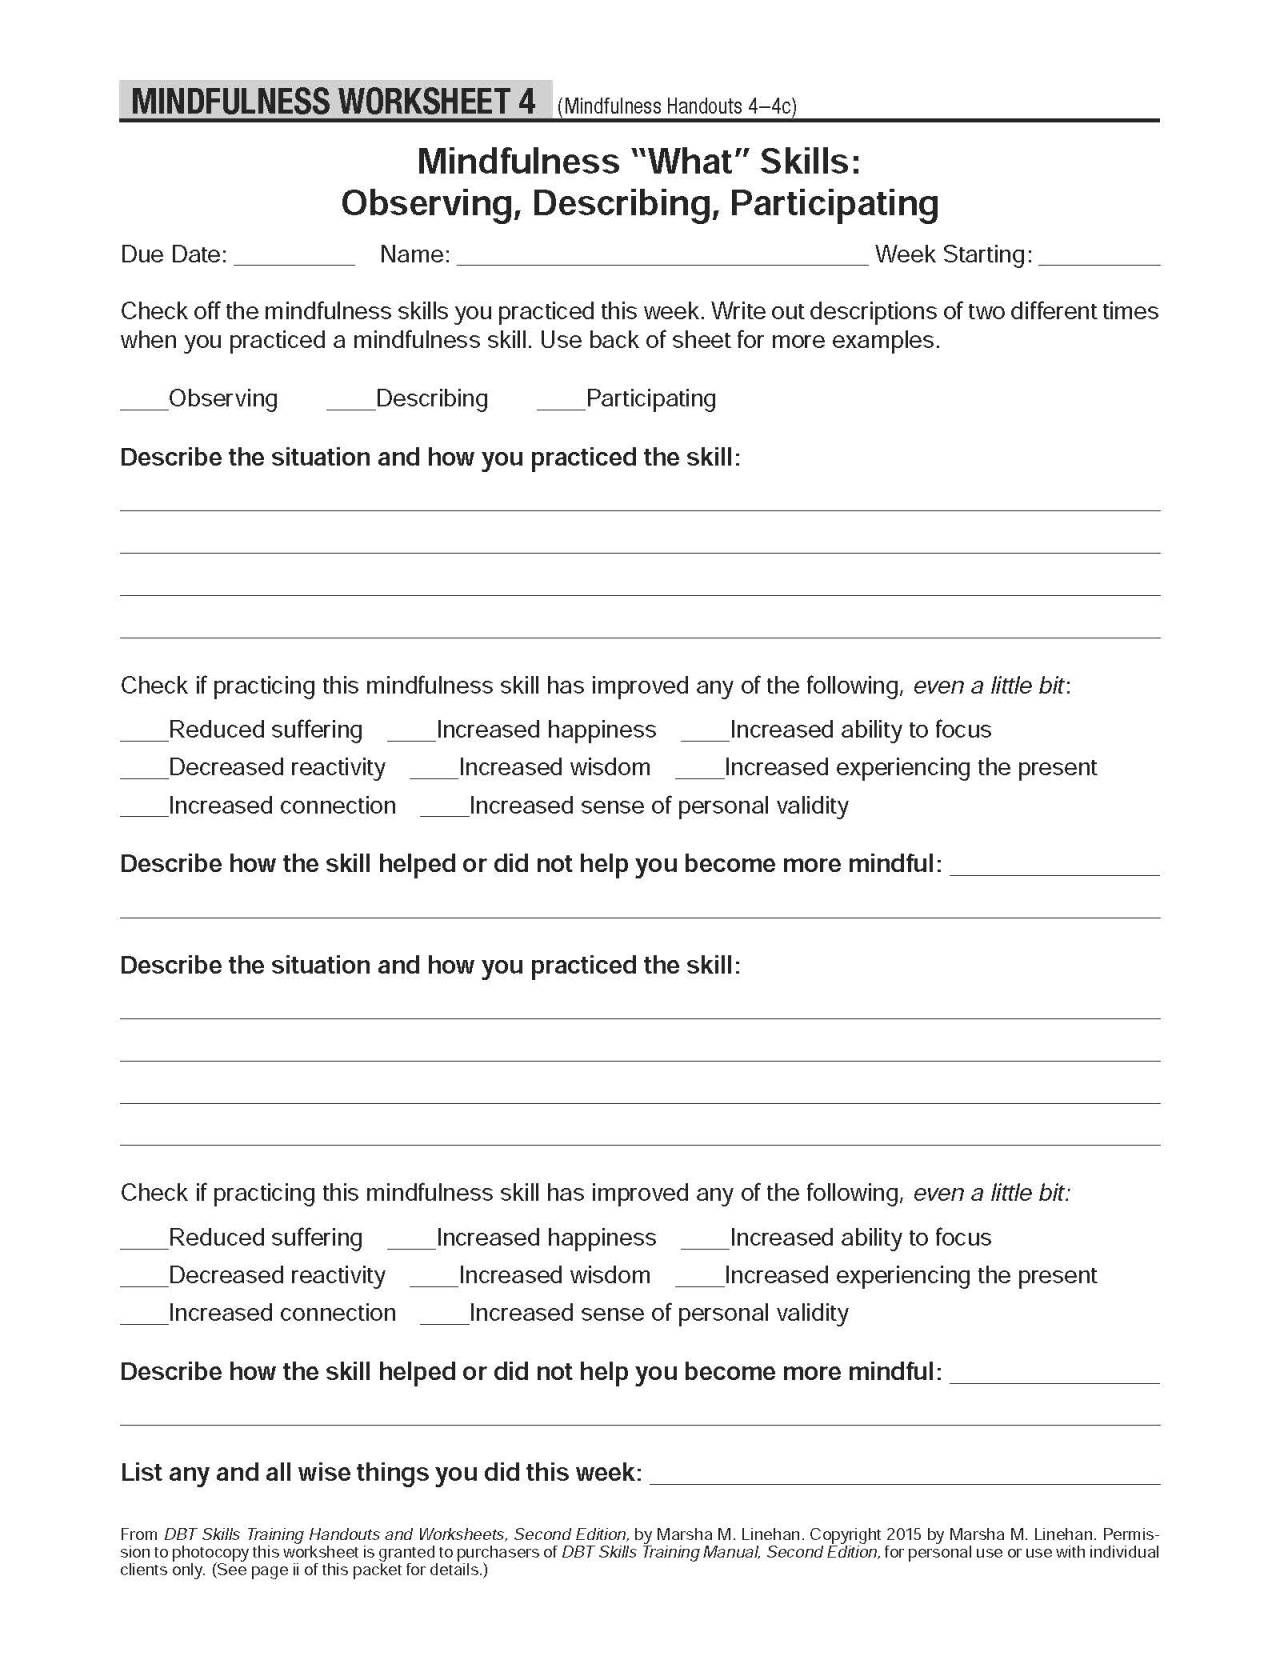 Dbt skills training handouts and worksheets free pdf